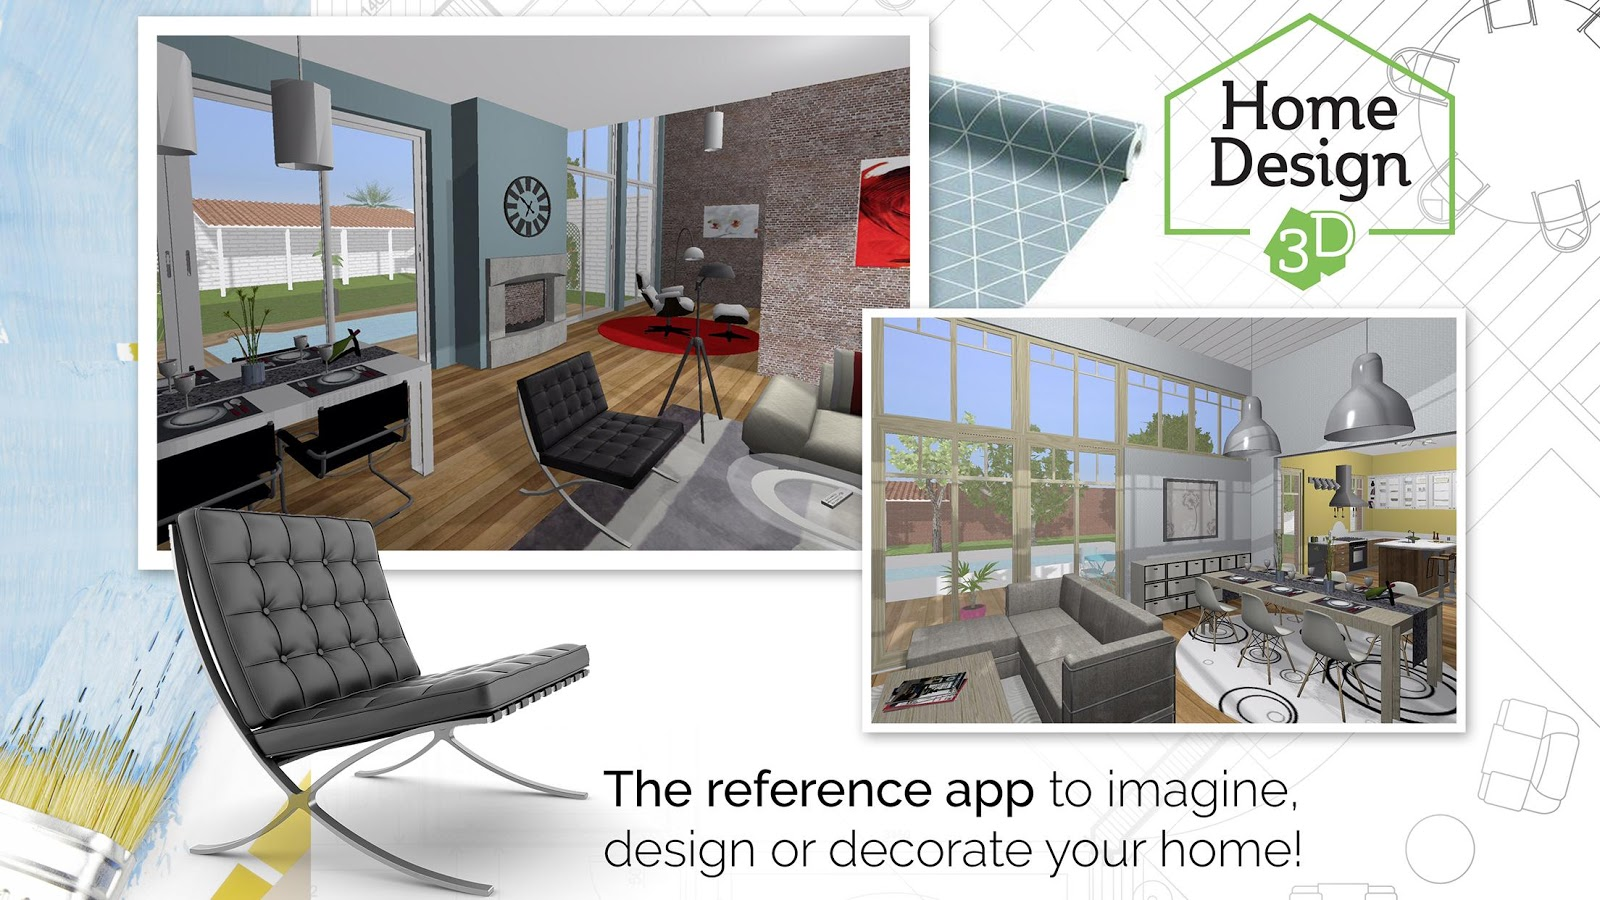 with home design 3d designing and remodeling your house in 3d has